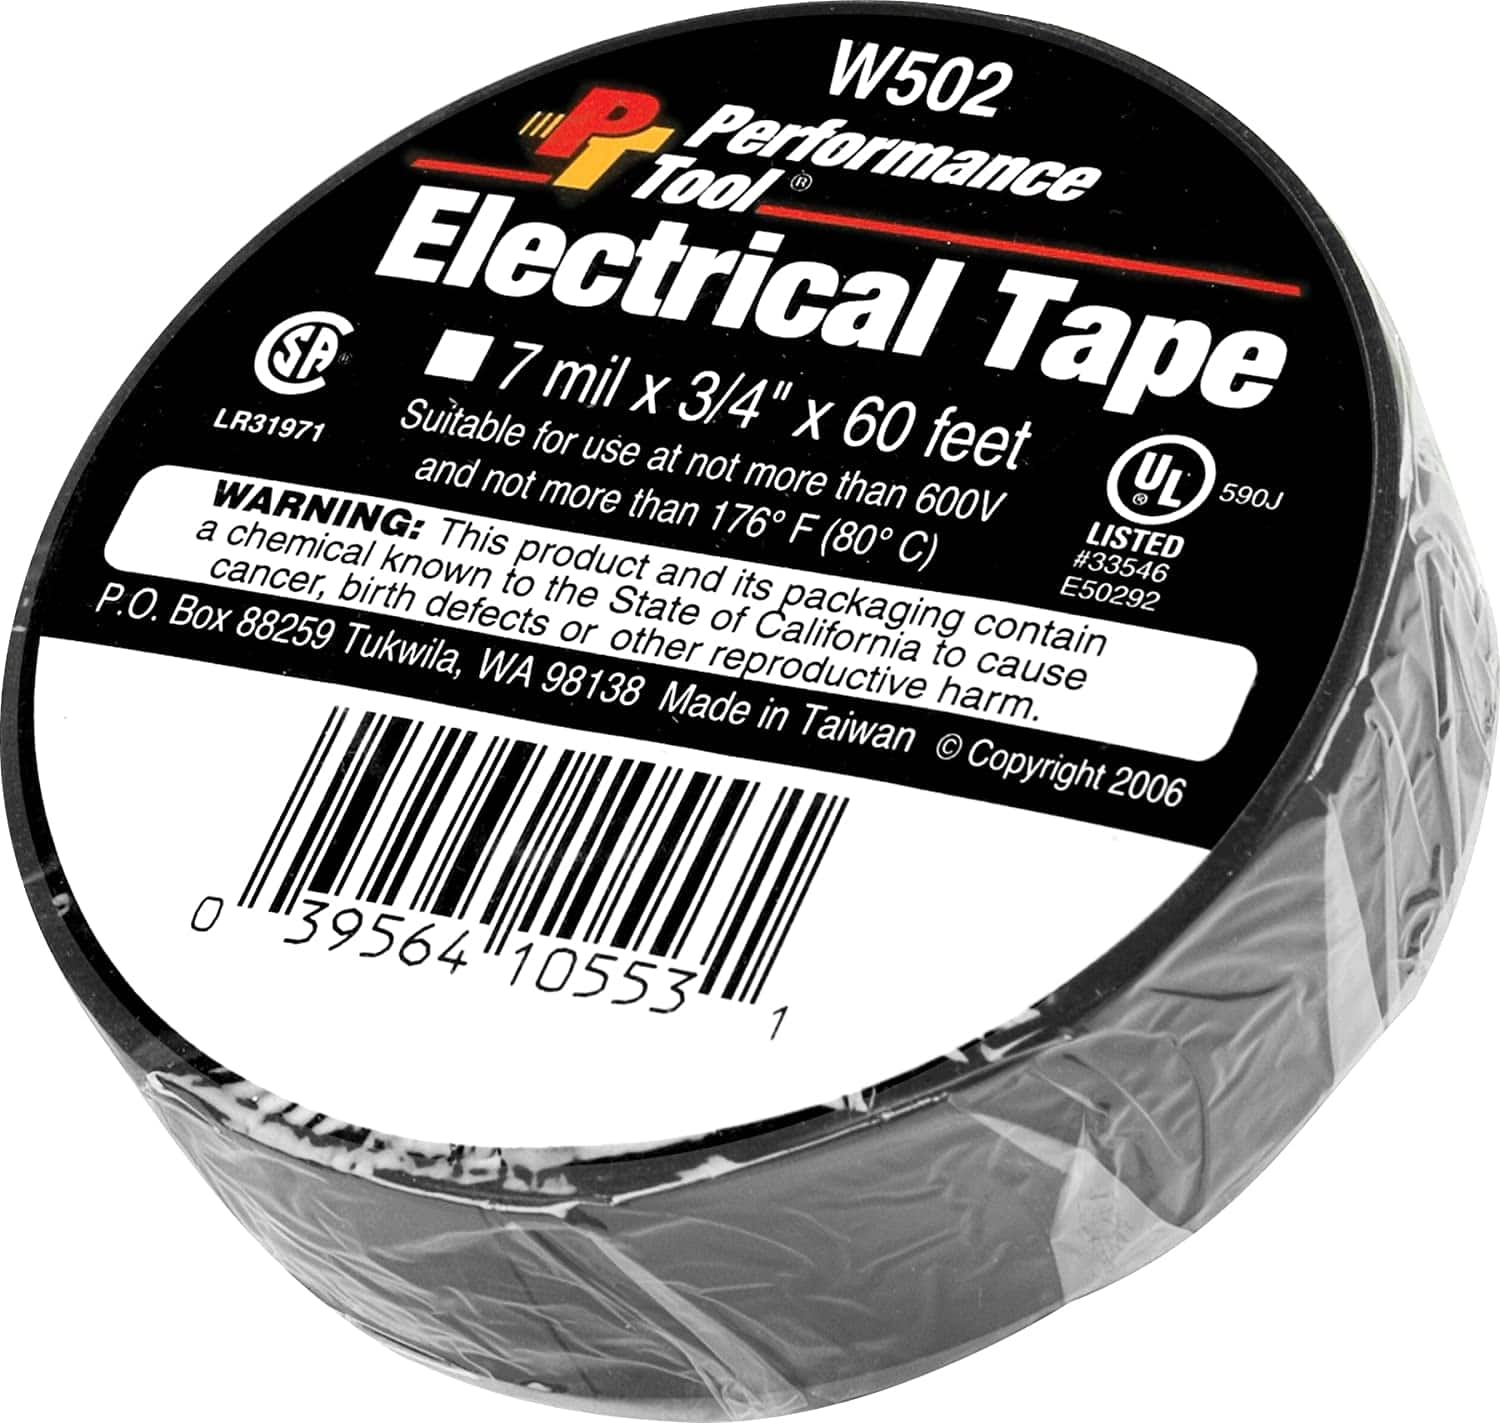 Performance Tool W502 Electrical Tape, 3/4in x 60ft  - $1.44 FS w/ Prime